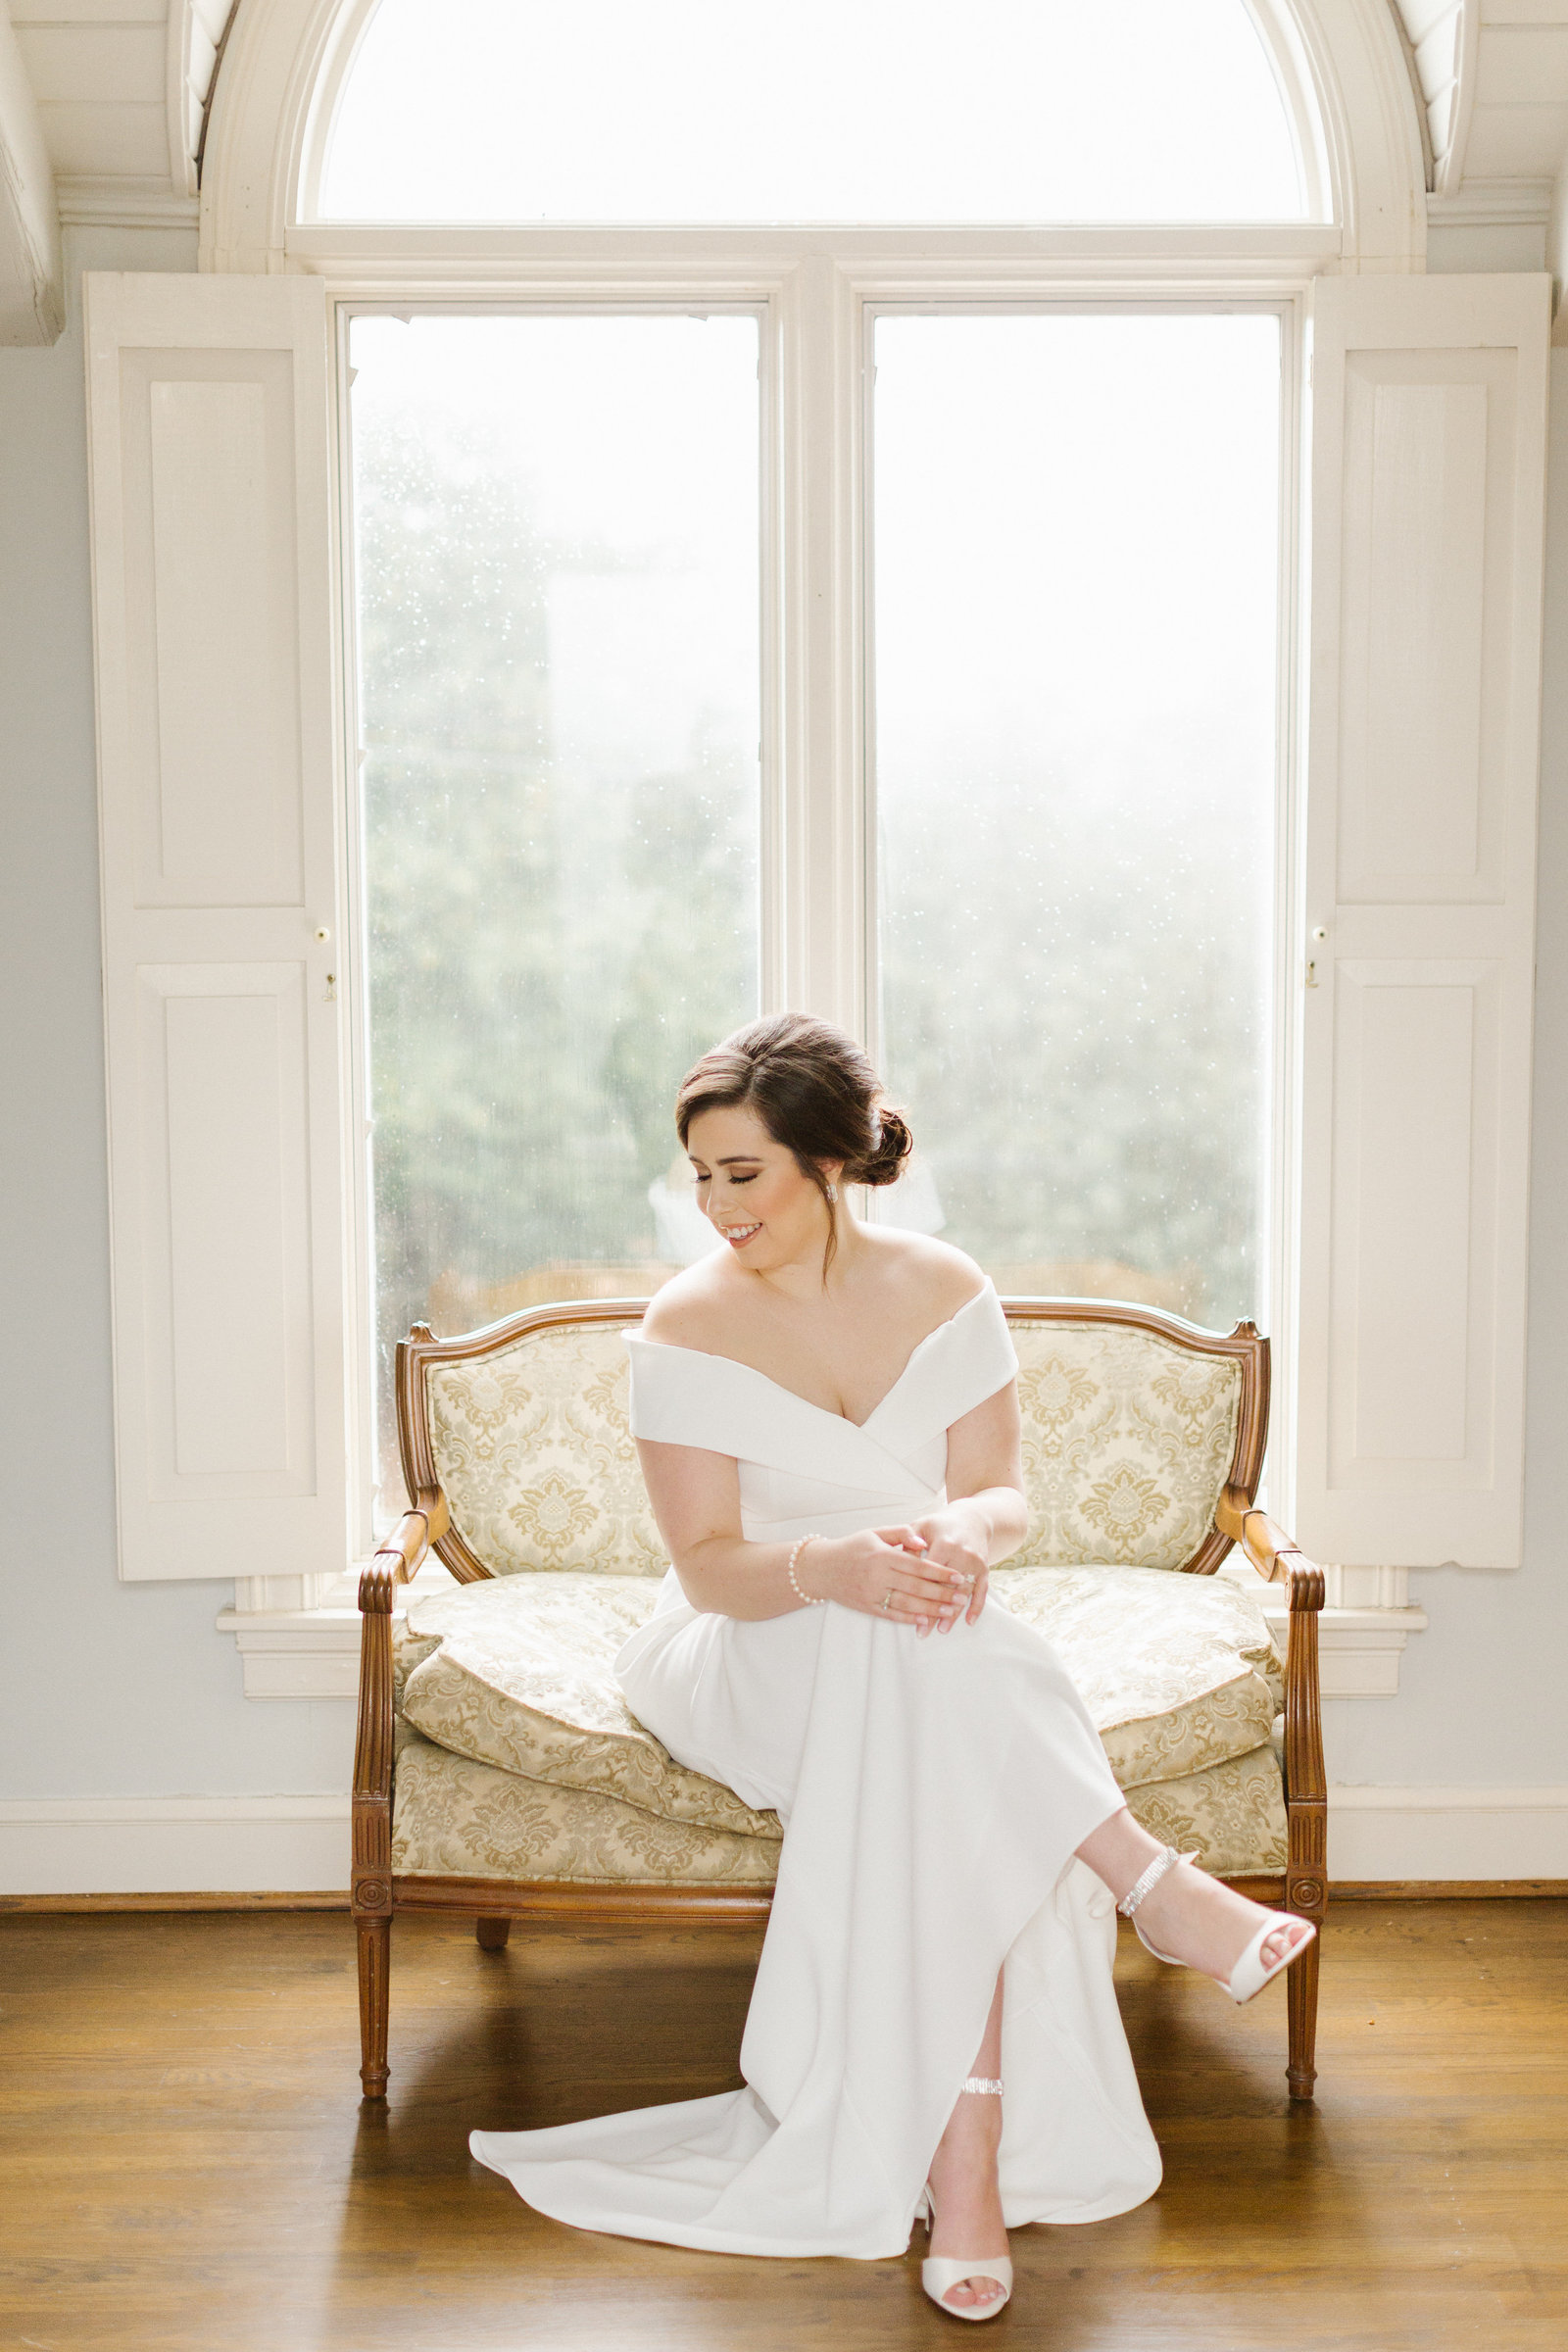 01_Bride-Getting-Ready_142